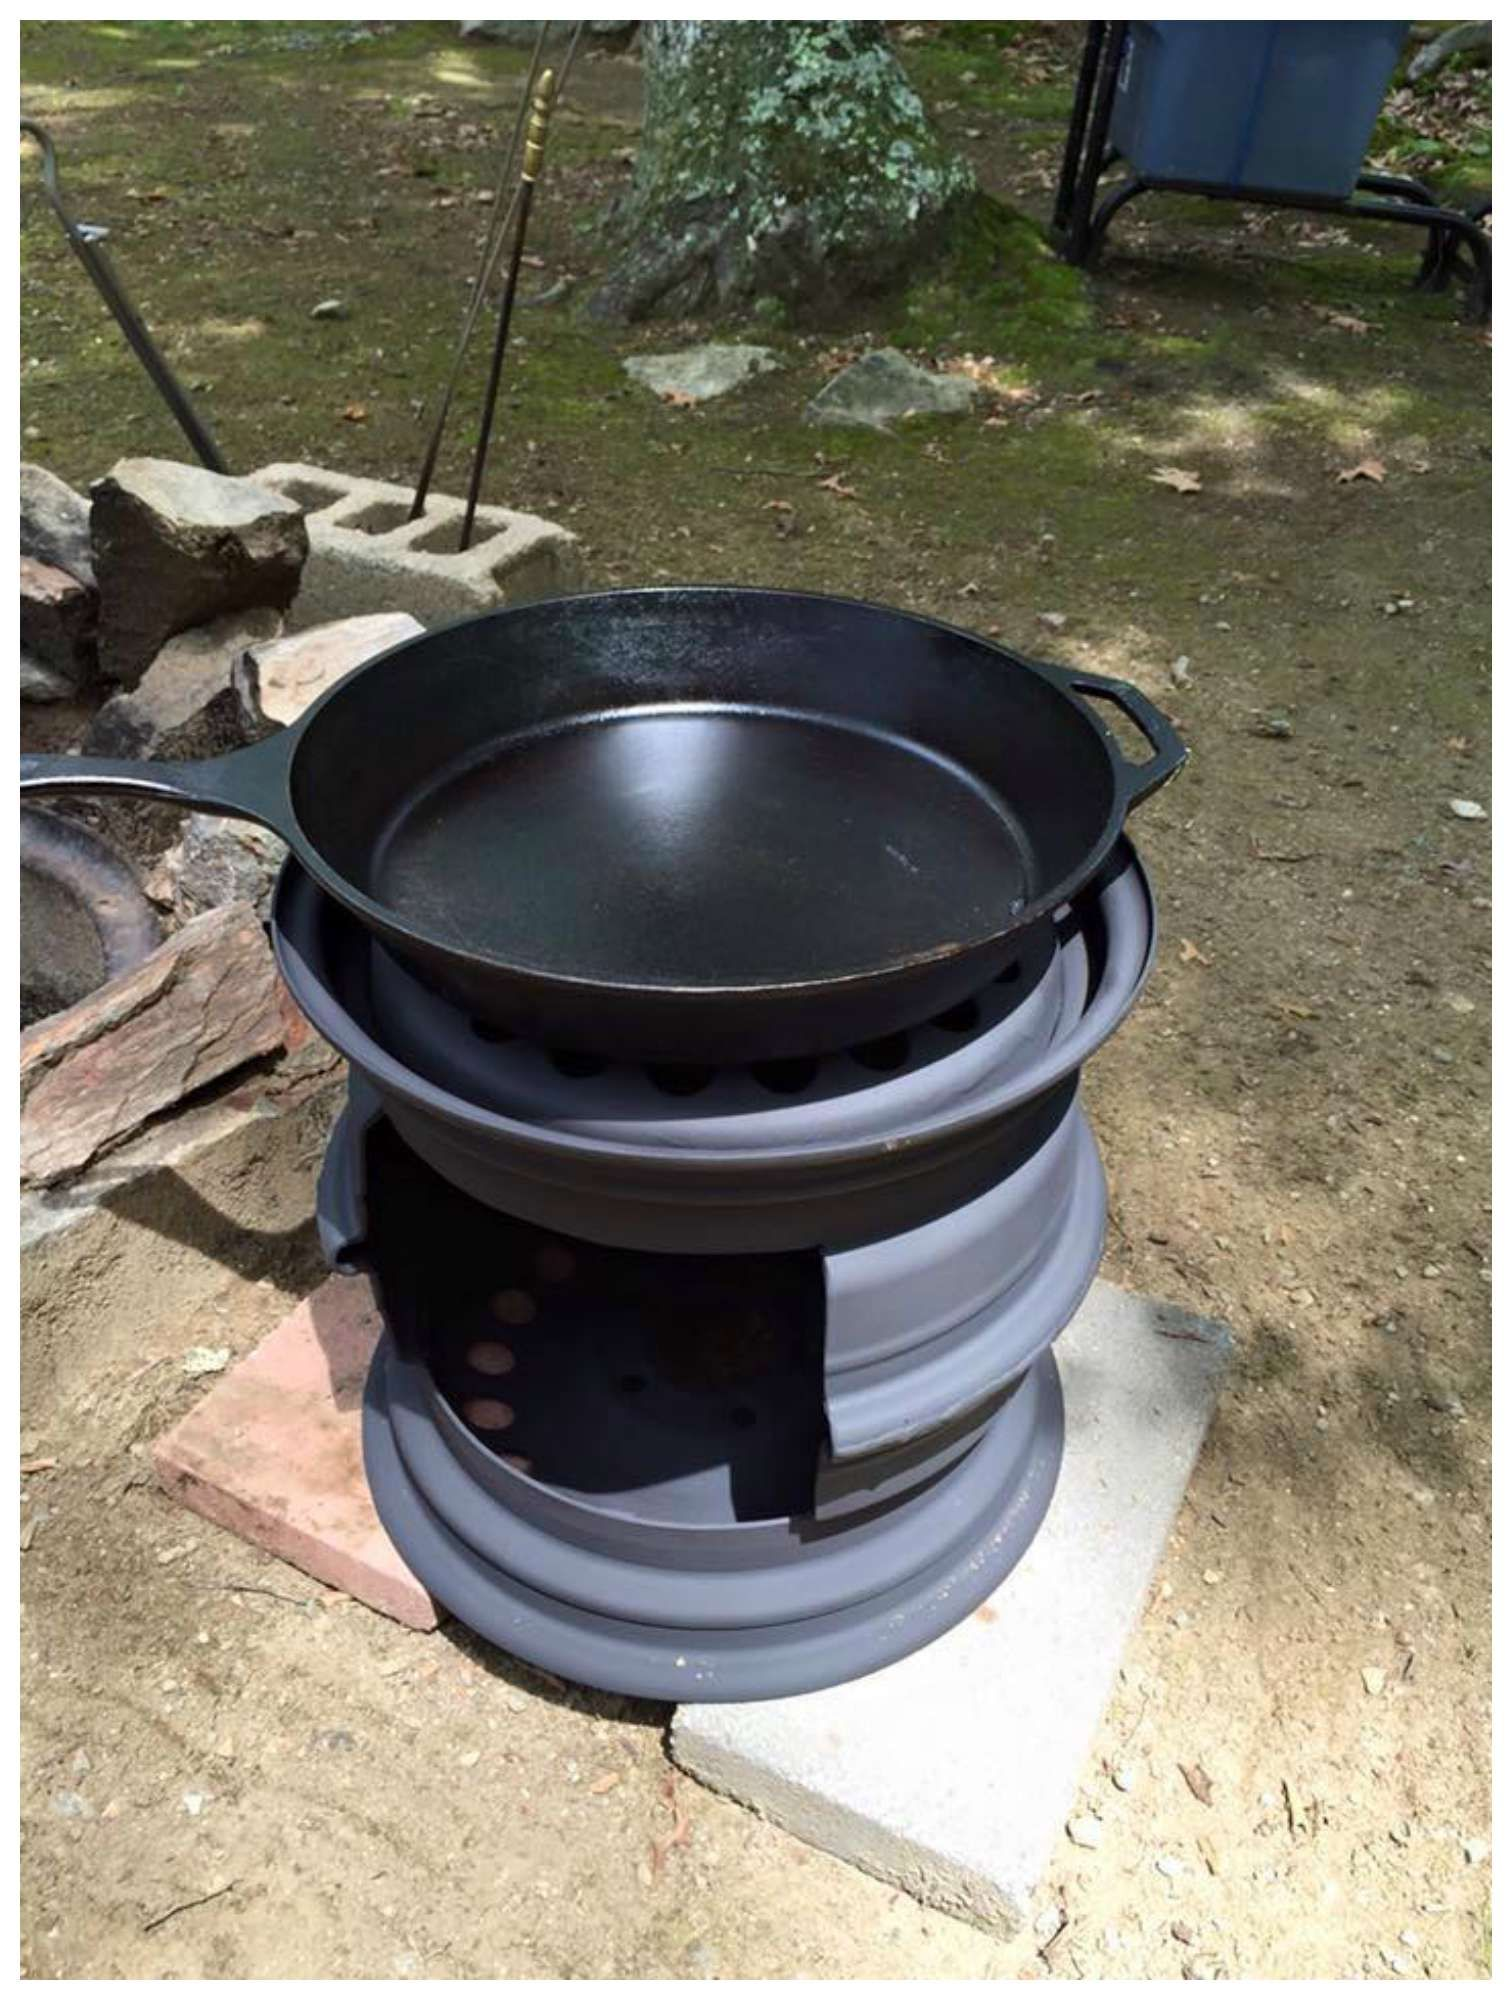 DIY Outdoor Stove Made From Tire Rims? - DIY Outdoor Stove Made From Tire Rims? Diy Wood Stove, Diy Wood